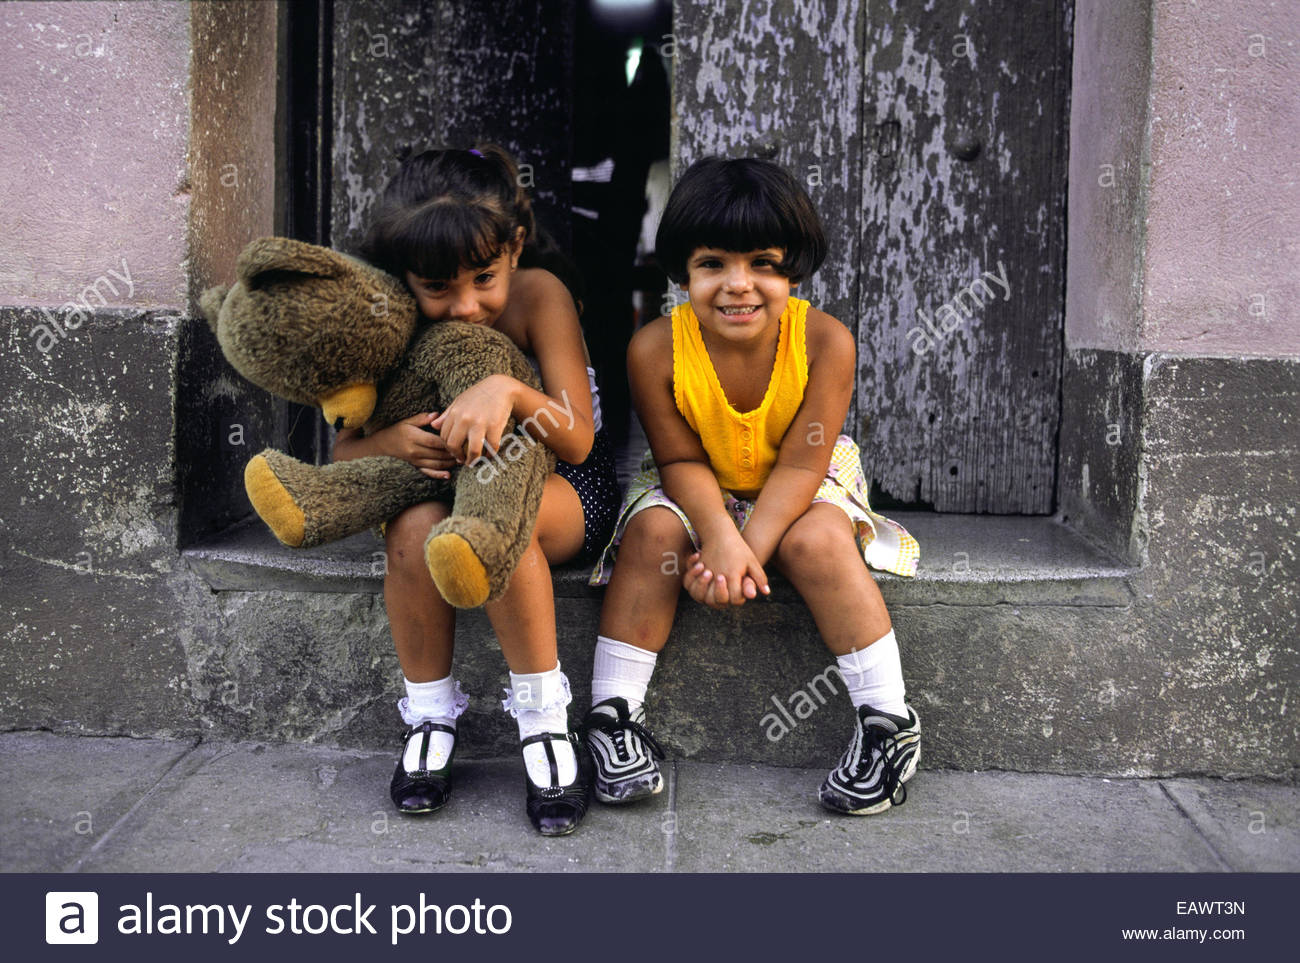 Young girls giggle while sitting in a street side doorway. - Stock Image